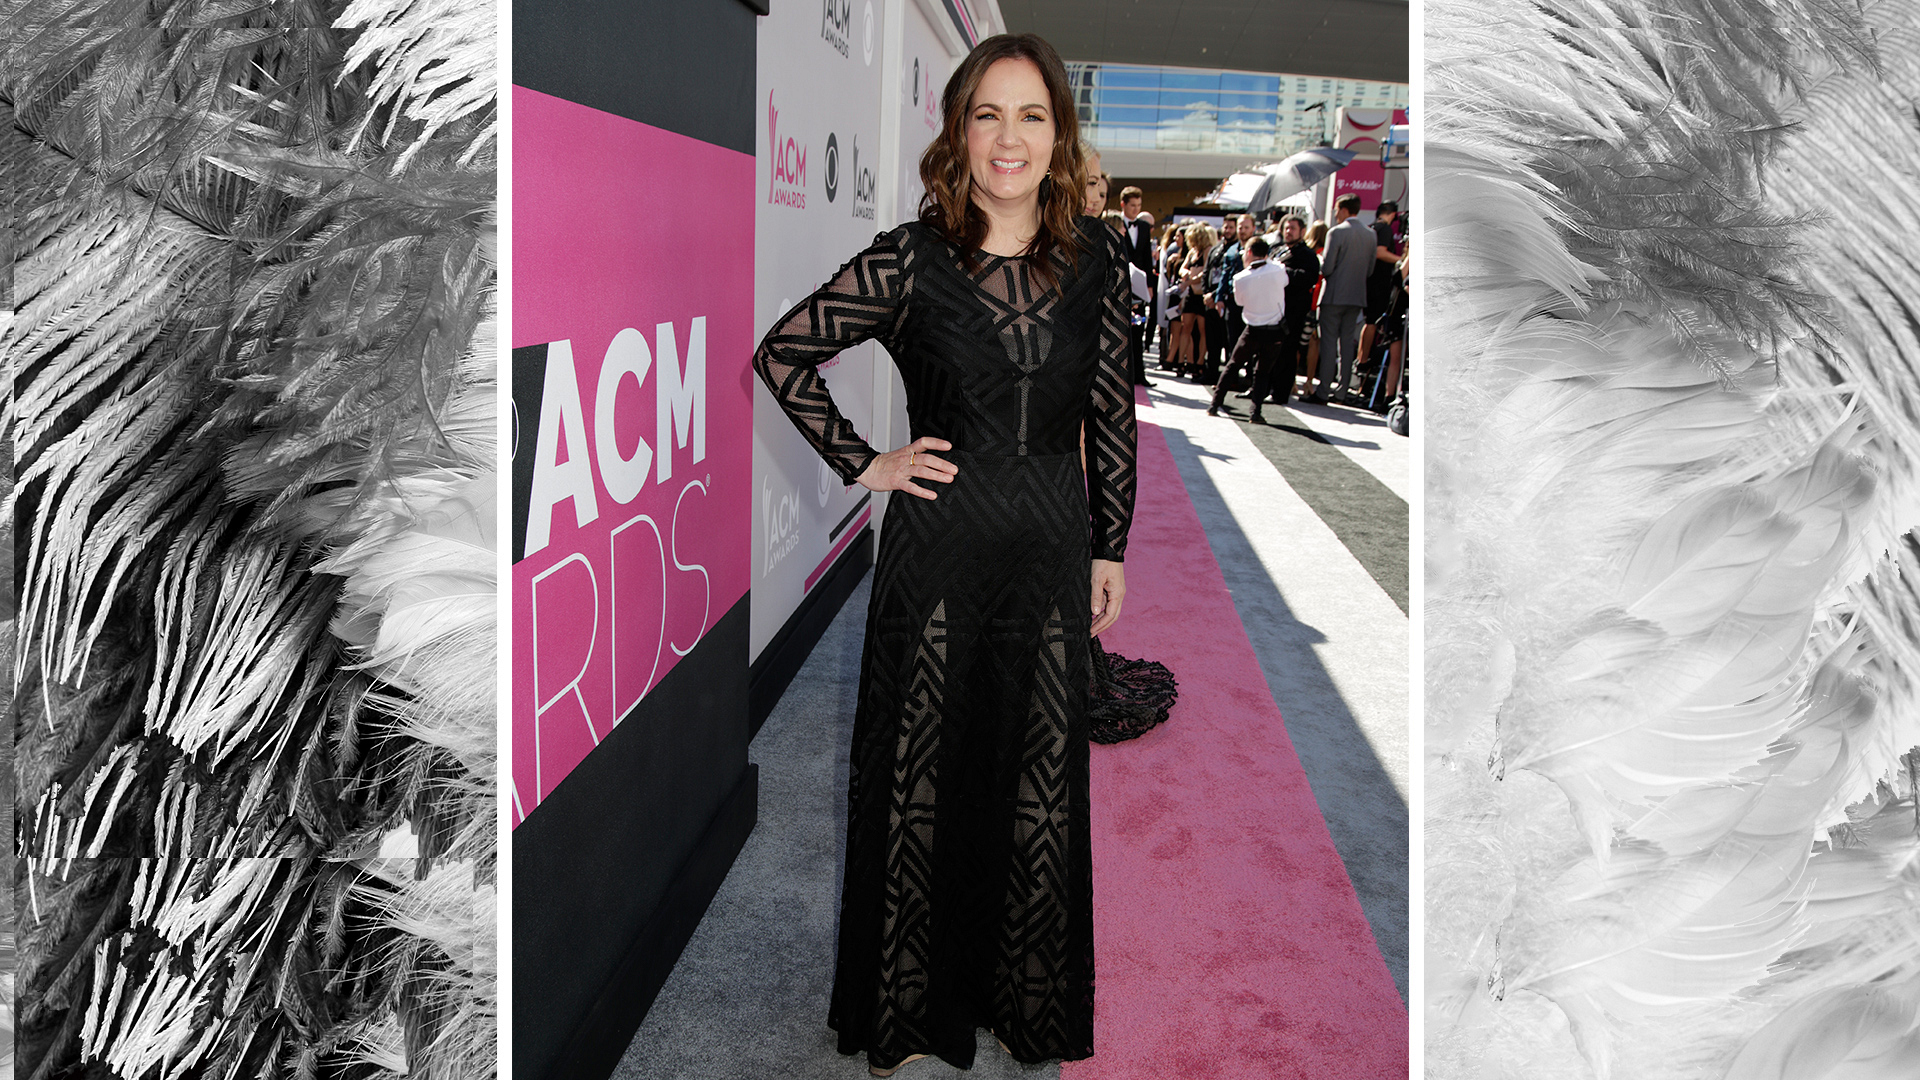 Songwriter Lori McKenna is beautiful in black with geometric-patterned lace accents.